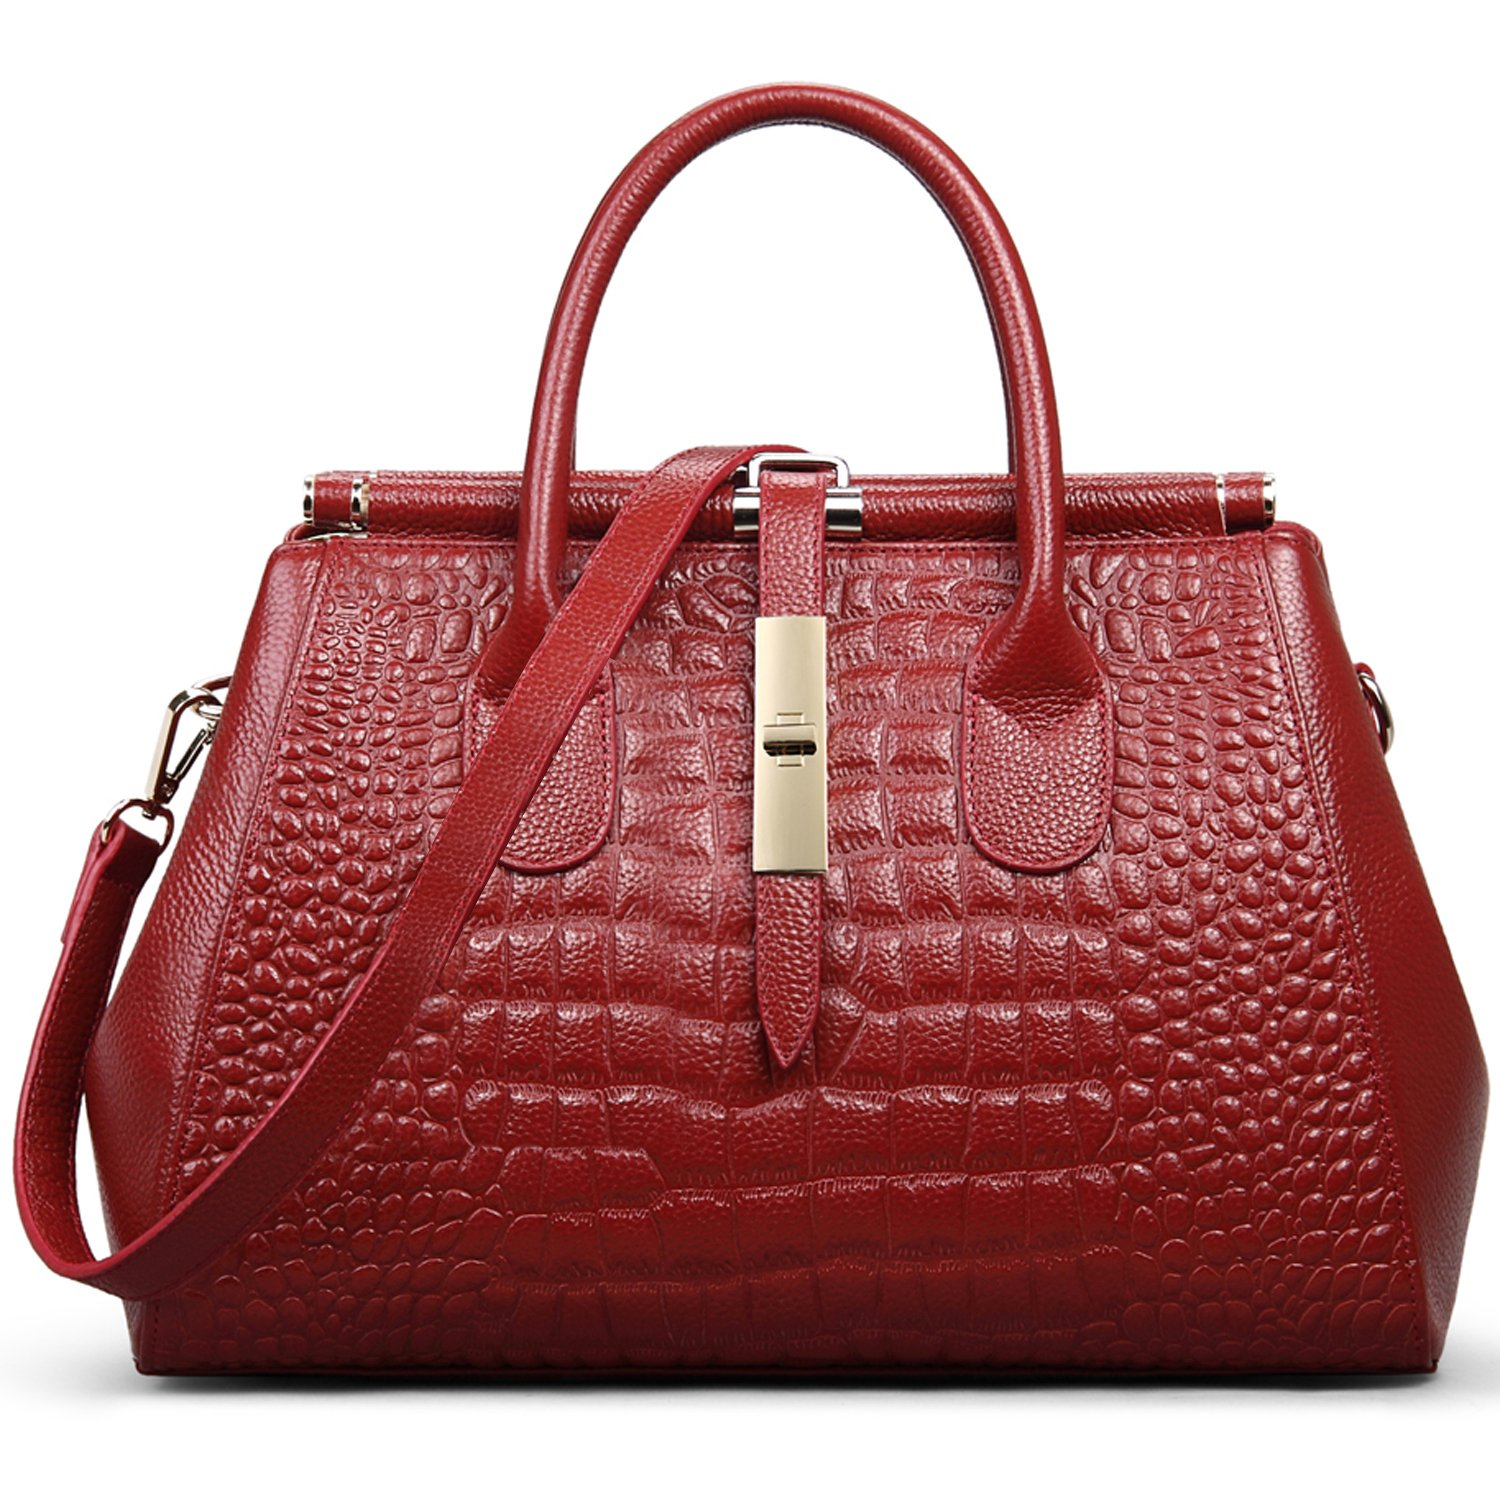 Jack&Chris Ladies Top Handle Tote Bag for Women Crocodile Embossed Purses and Handbags on Clearance, WBDZ024 (Red)